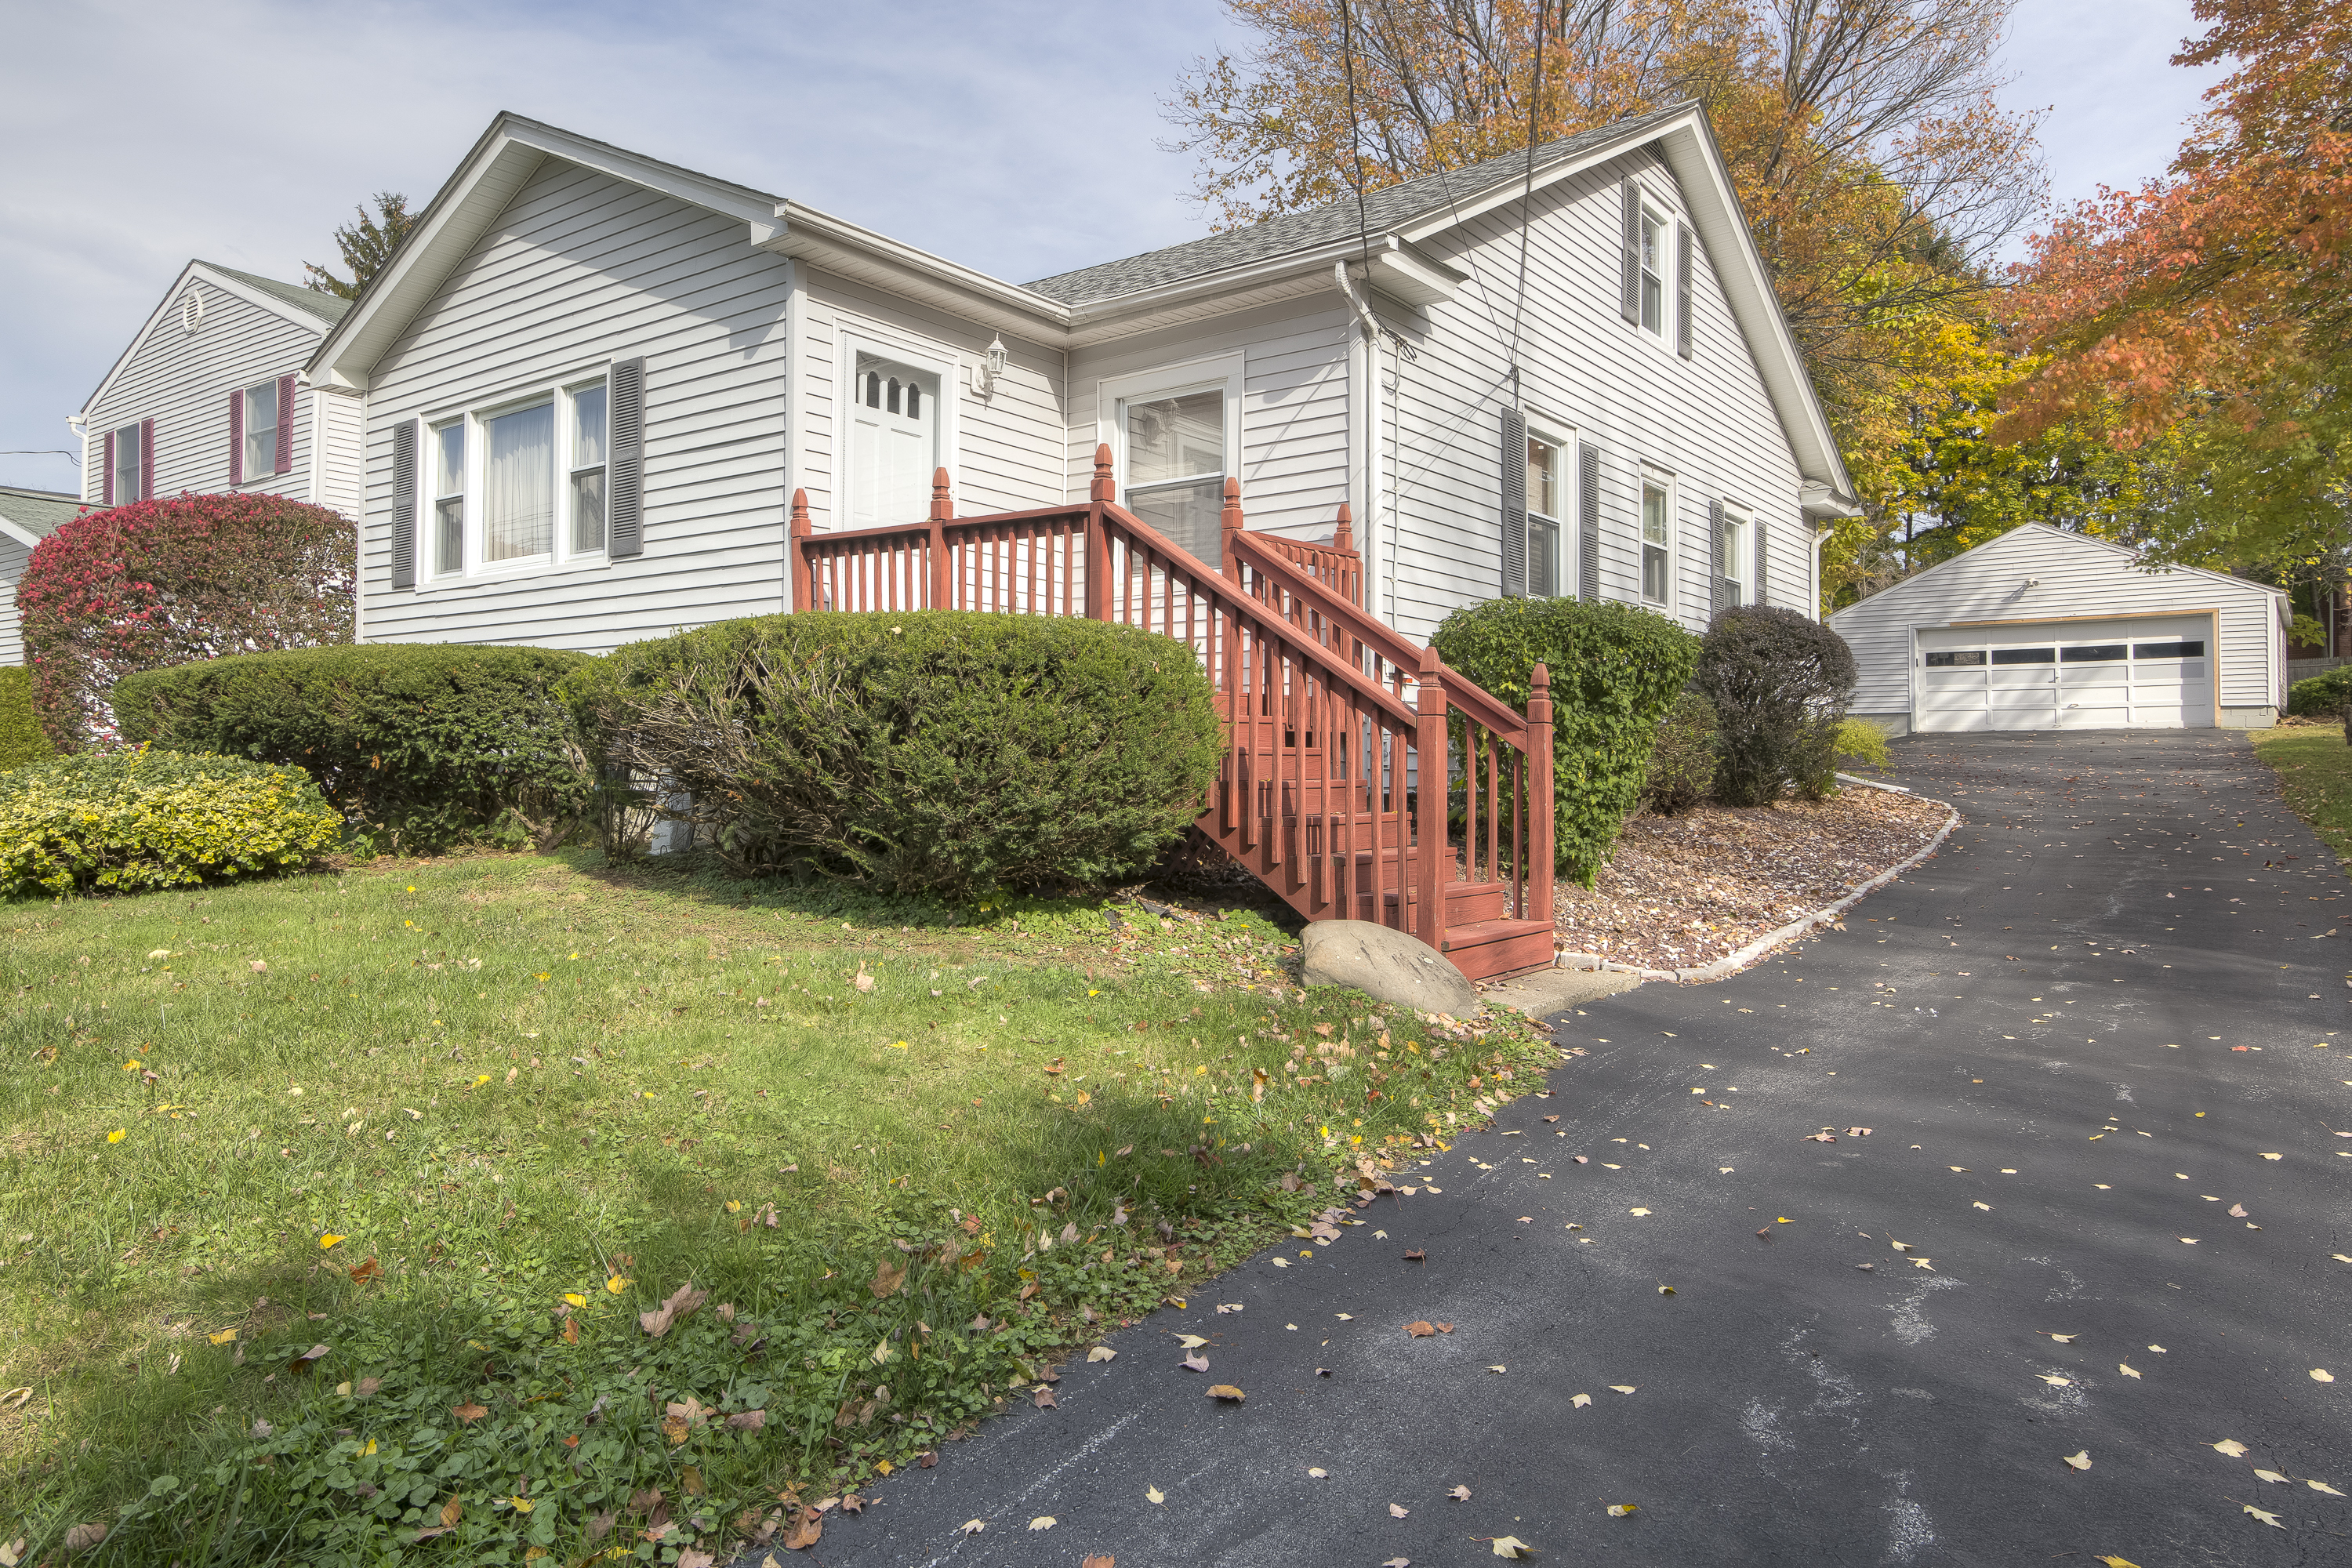 20 Peckham Rd, one of homes for sale in Poughkeepsie